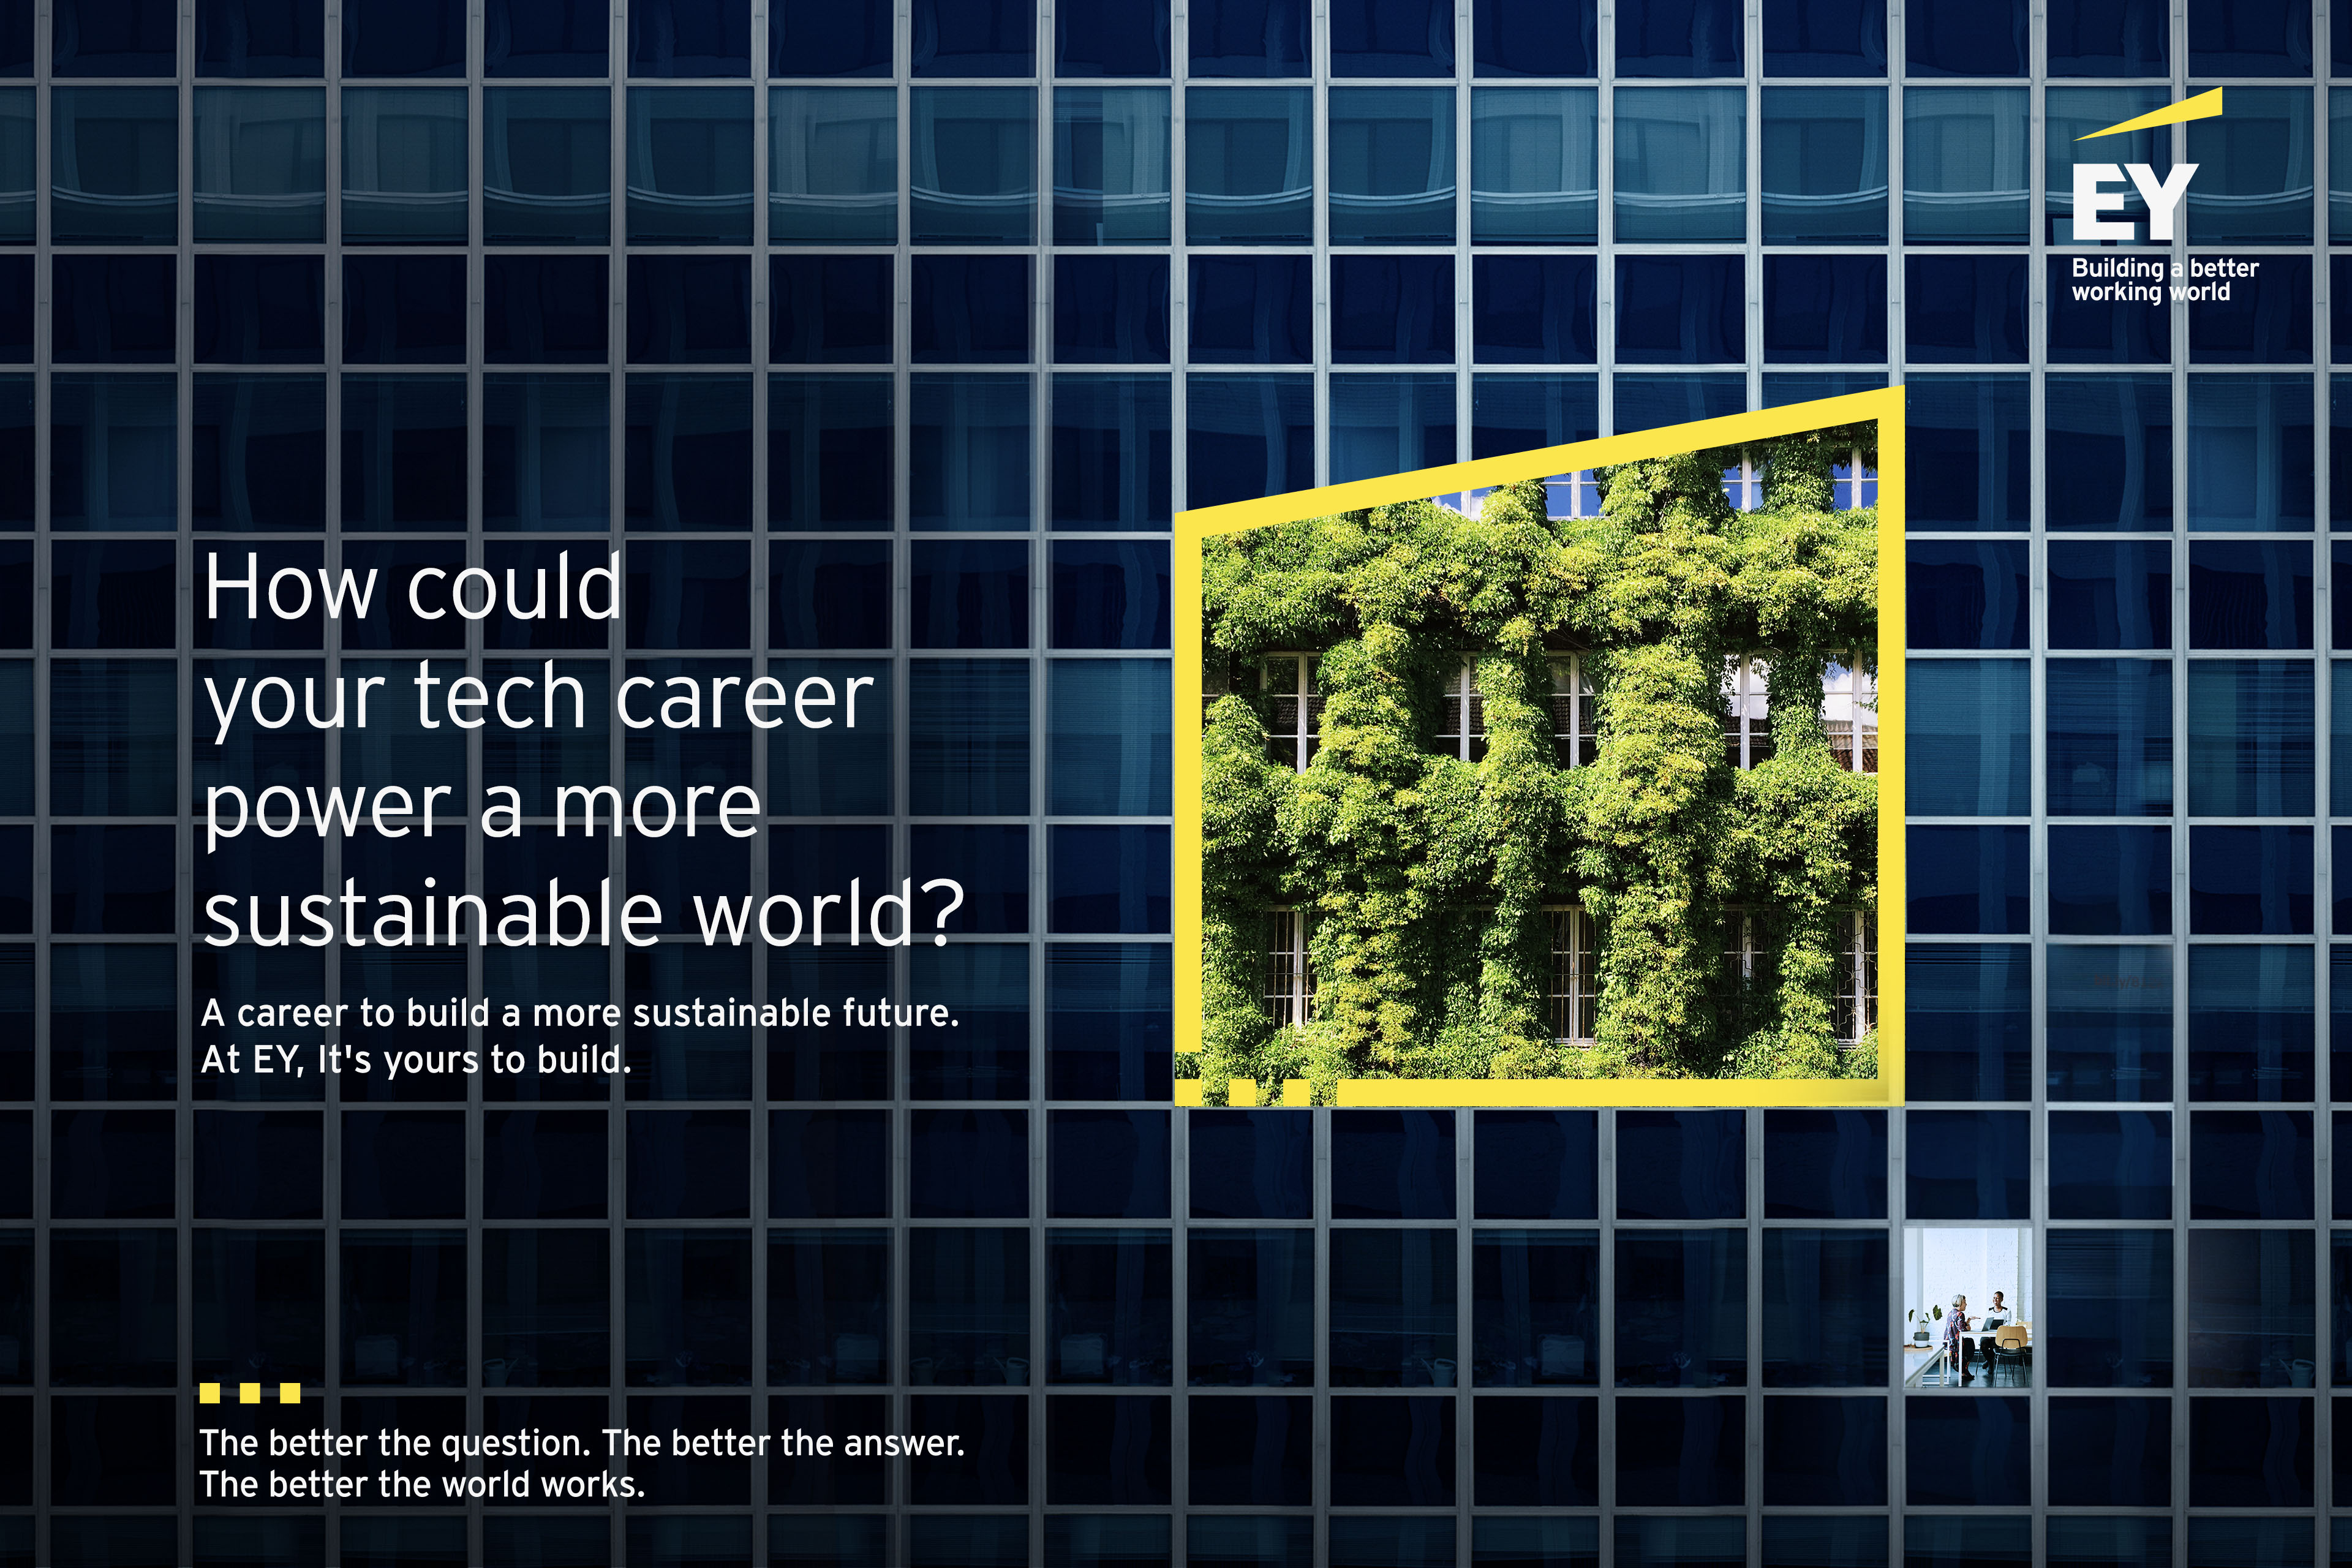 How could your tech career power a more sustainable world?